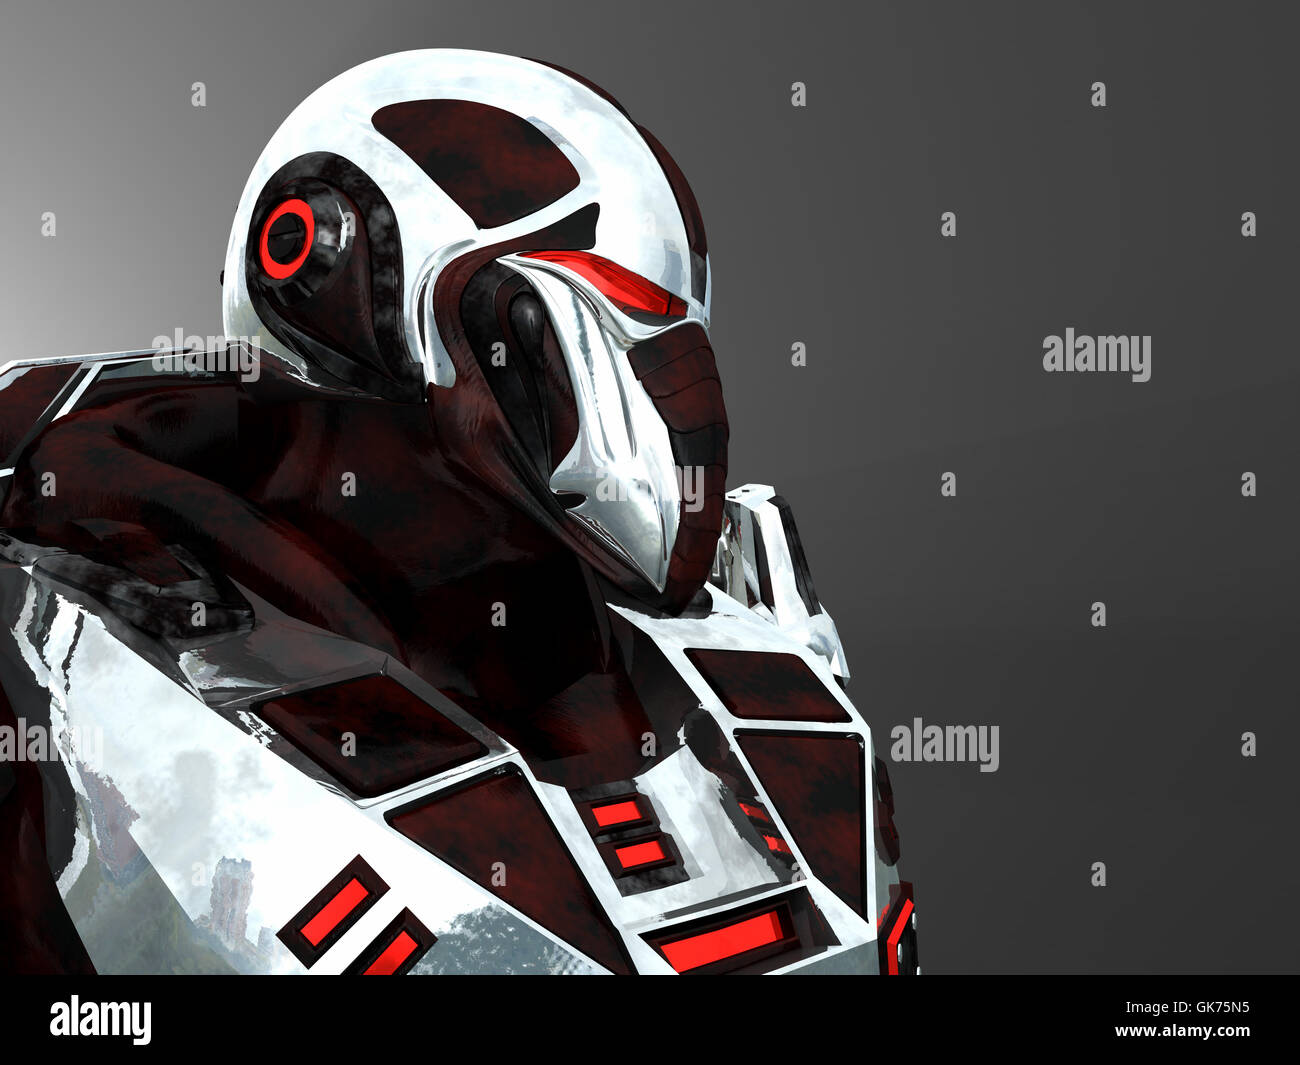 soldier futuristic technology - Stock Image